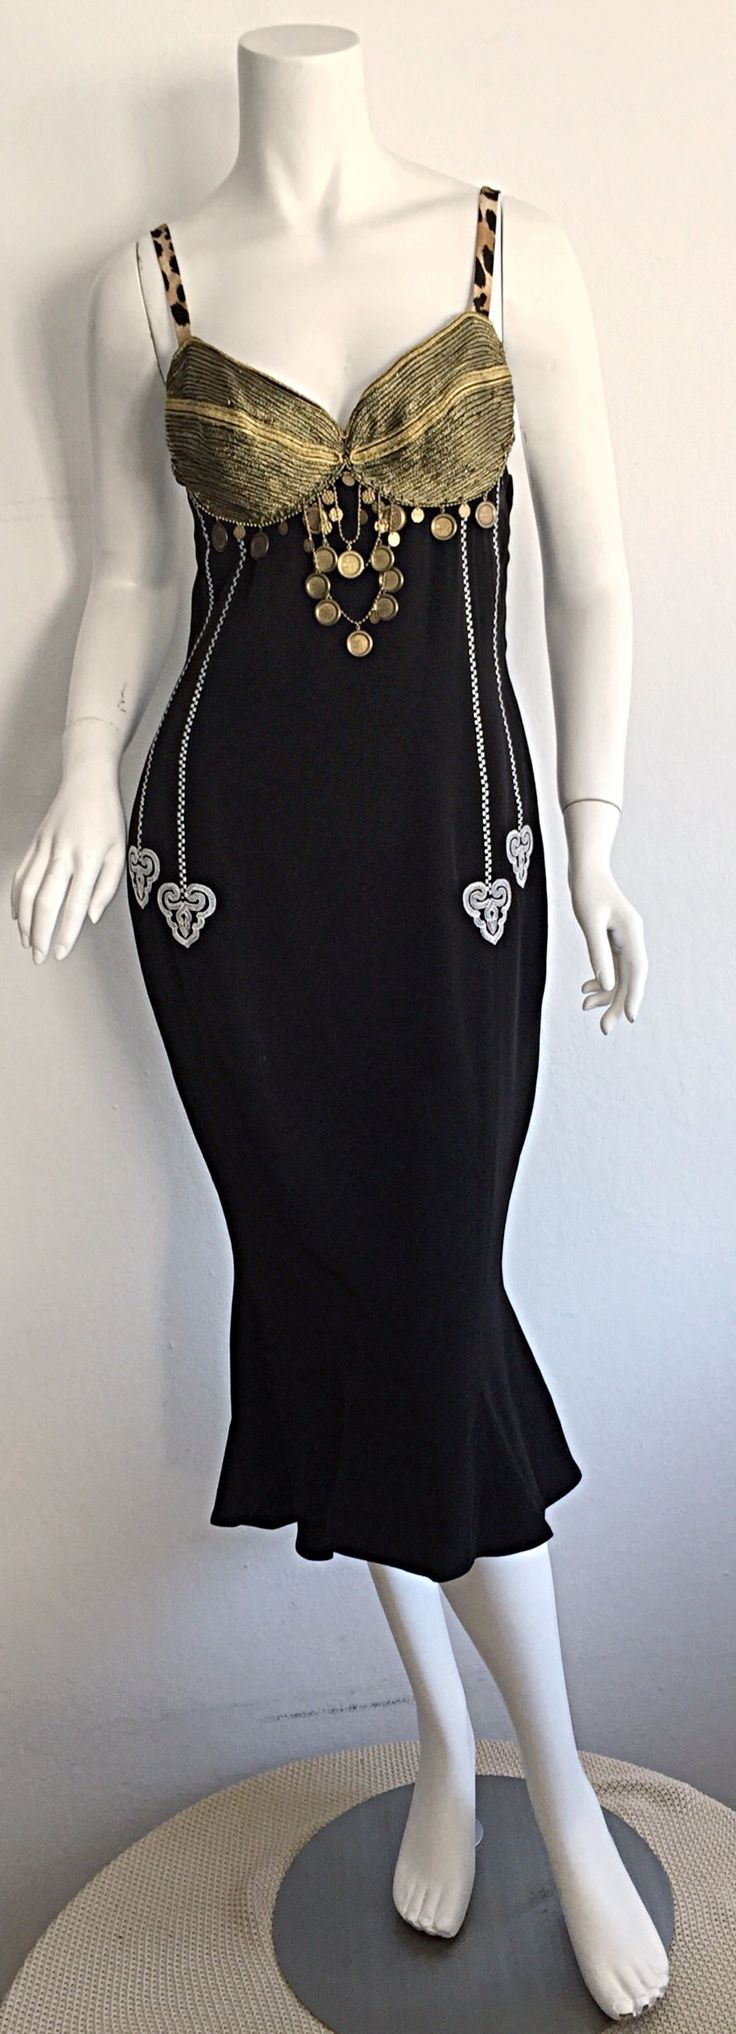 Super Rare Vintage Future Rifat Ozbek Sexy Ethnic Black Coin Dress | From a collection of rare vintage evening dresses at https://www.1stdibs.com/fashion/clothing/evening-dresses/